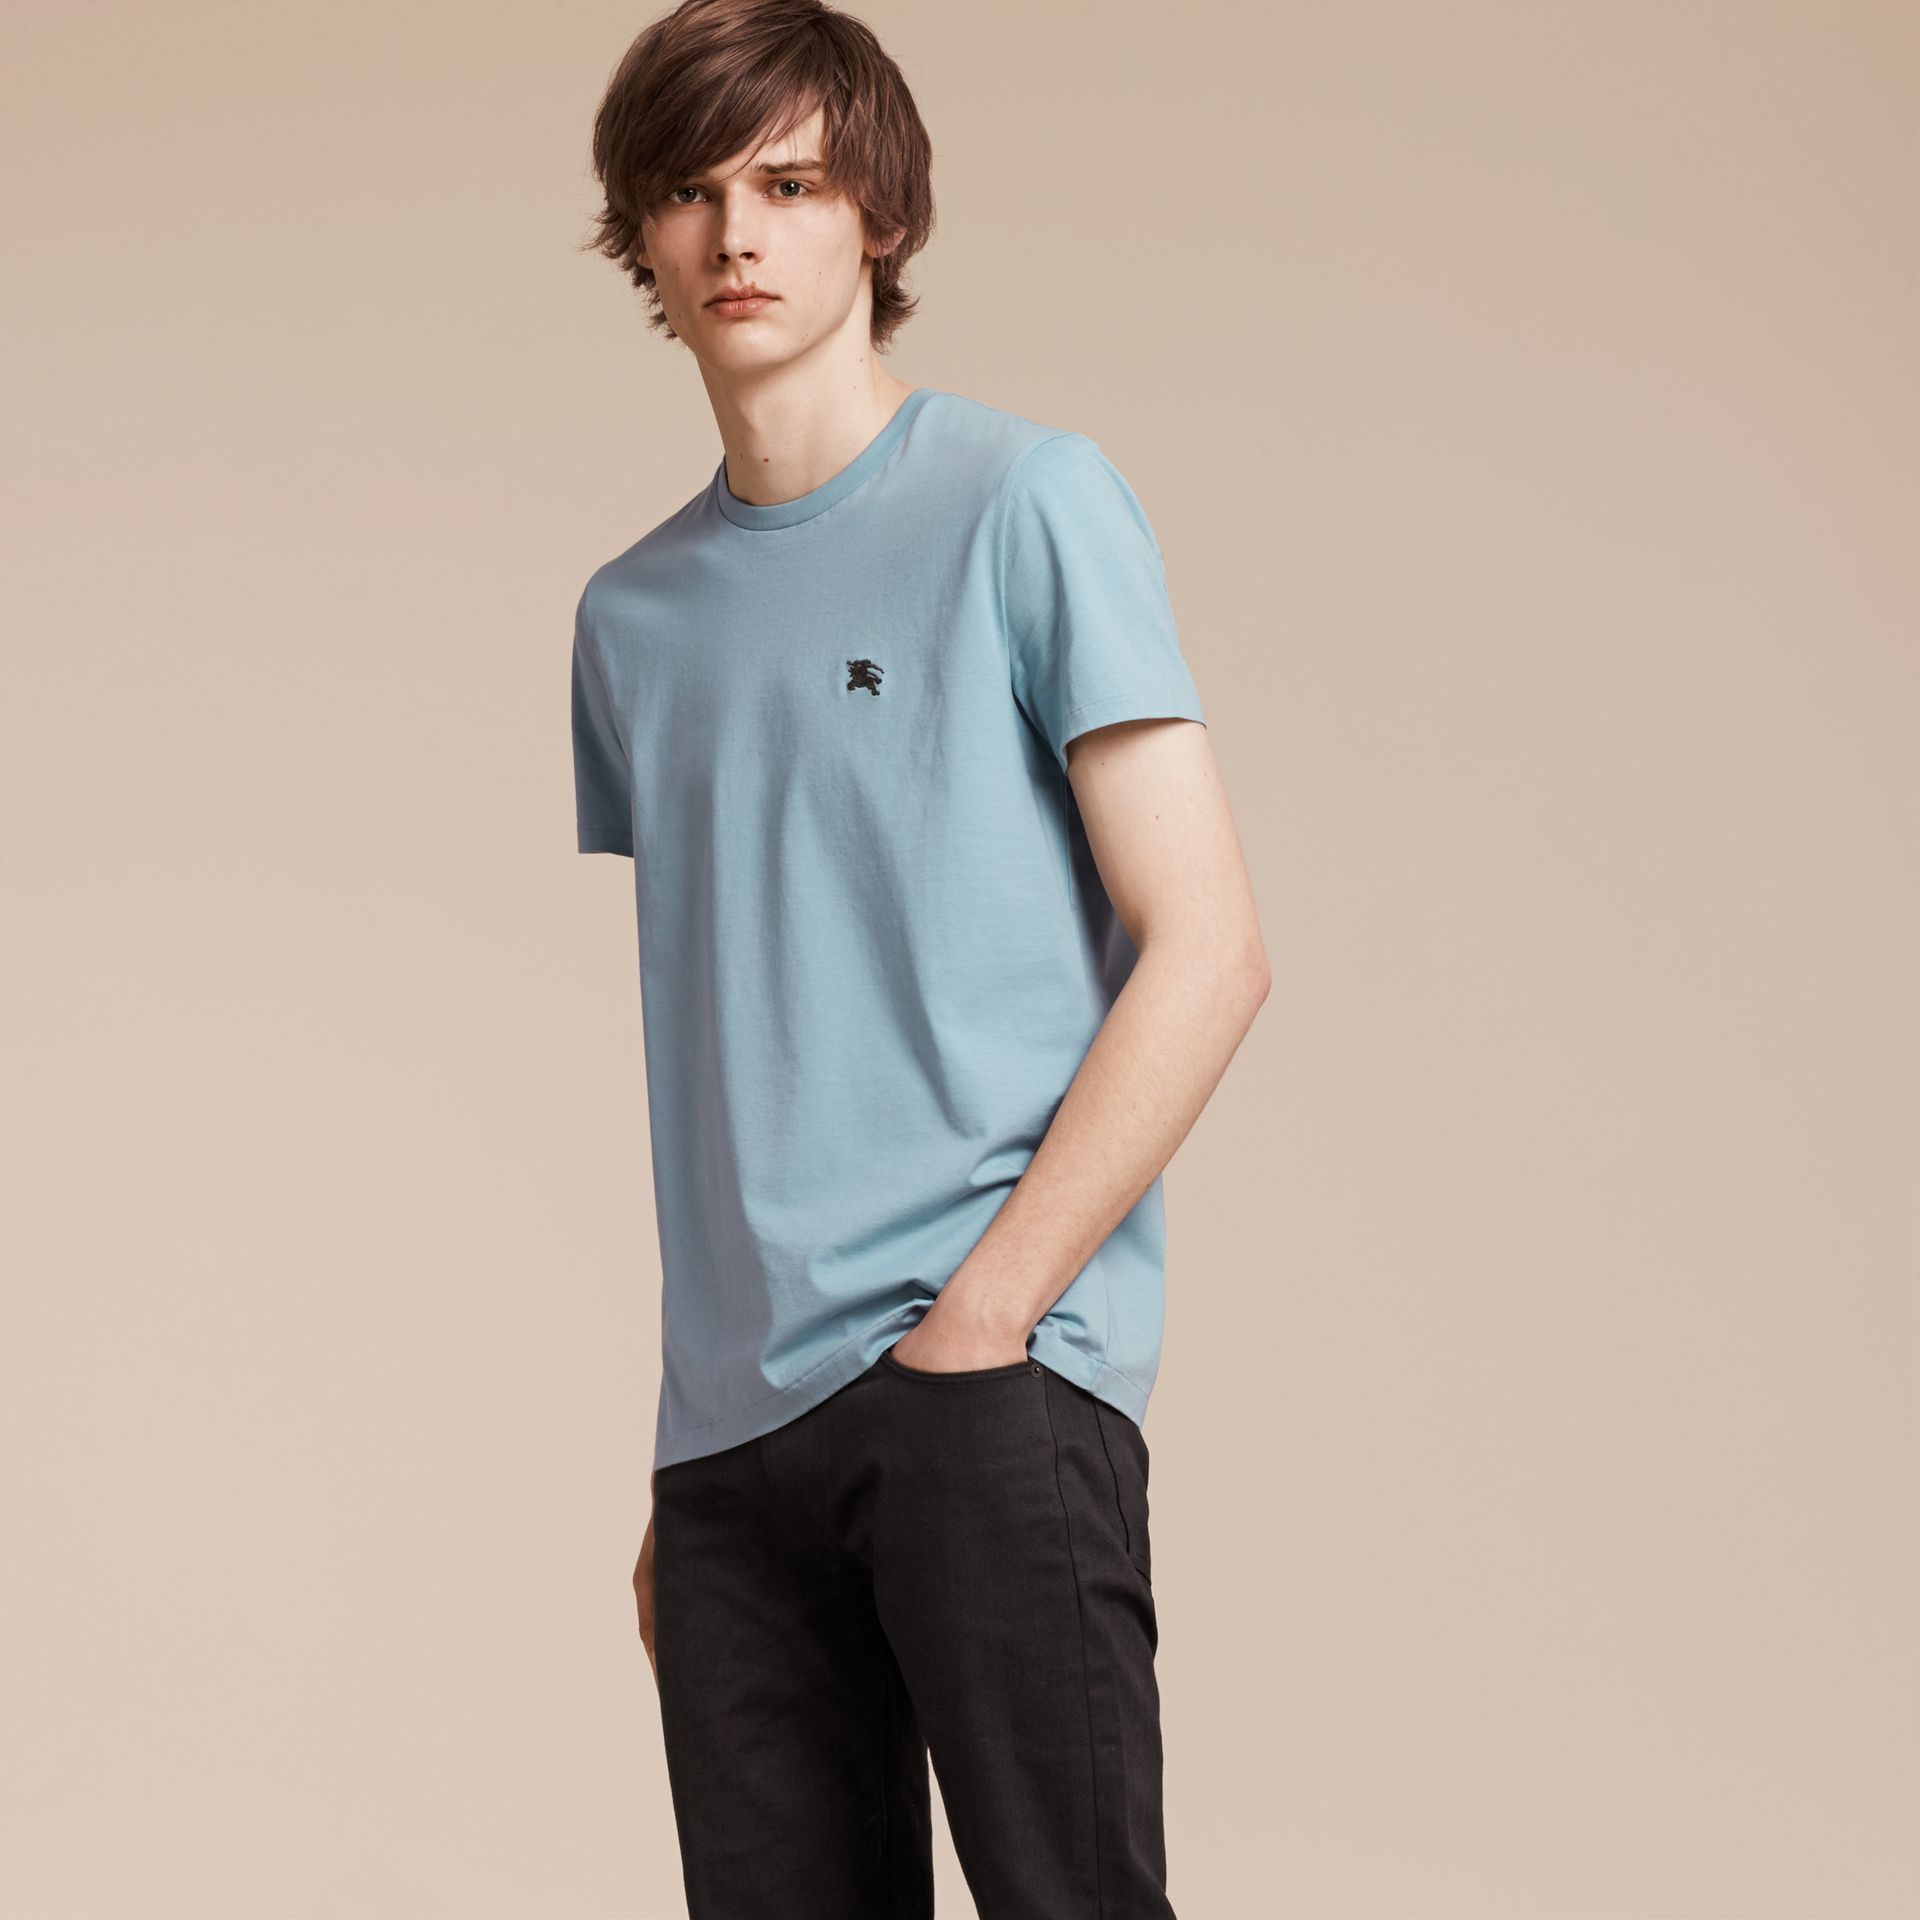 Pale blue Liquid-soft Cotton T-Shirt Pale Blue - gallery image 1